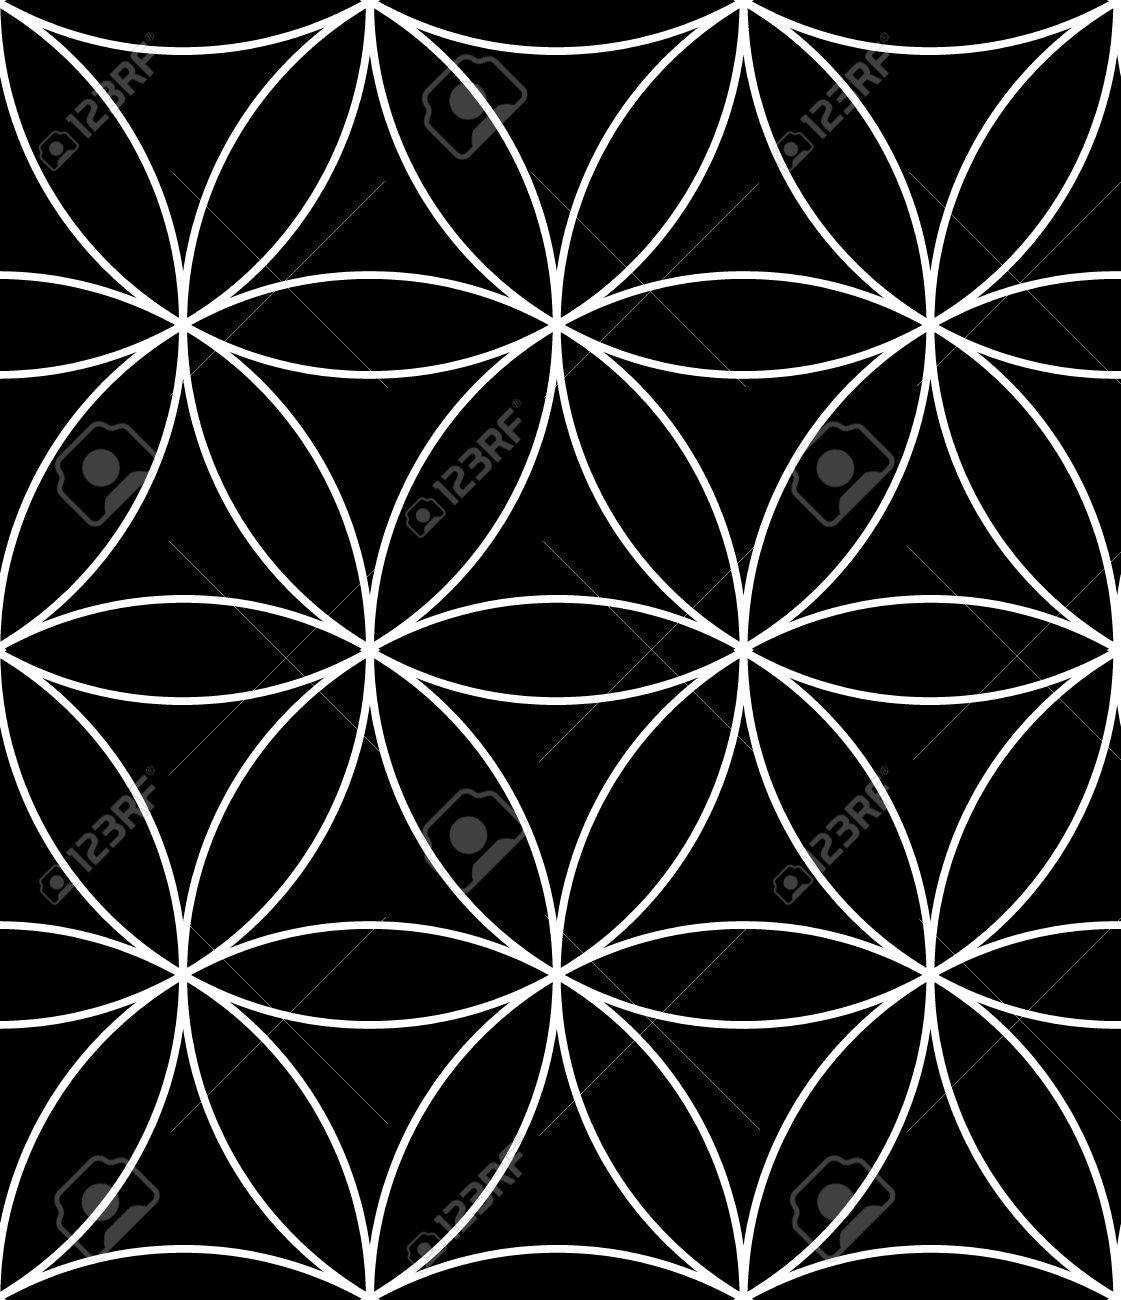 White bed sheet texture seamless - Vector Vector Modern Seamless Pattern Flower Of Life Black And White Textile Print Stylish Background Abstract Texture Monochrome Fashion Design